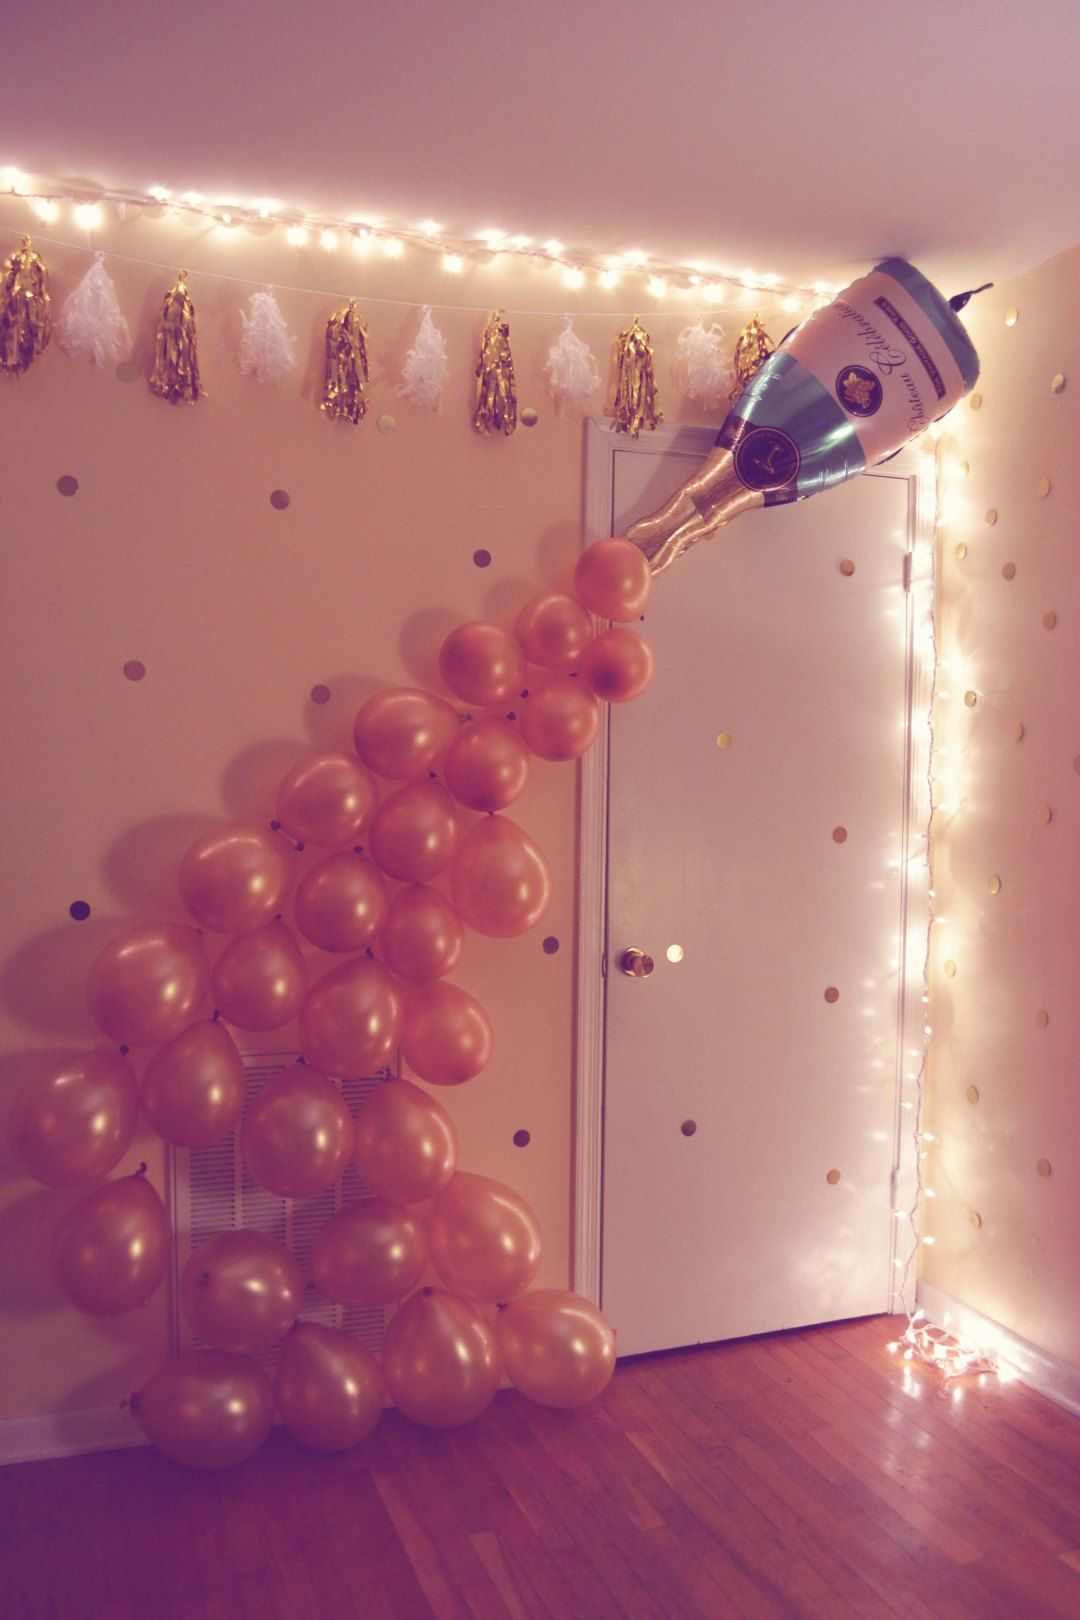 Diy 21st birthday party fun diy 21st birthday parties and nye solutioingenieria Images